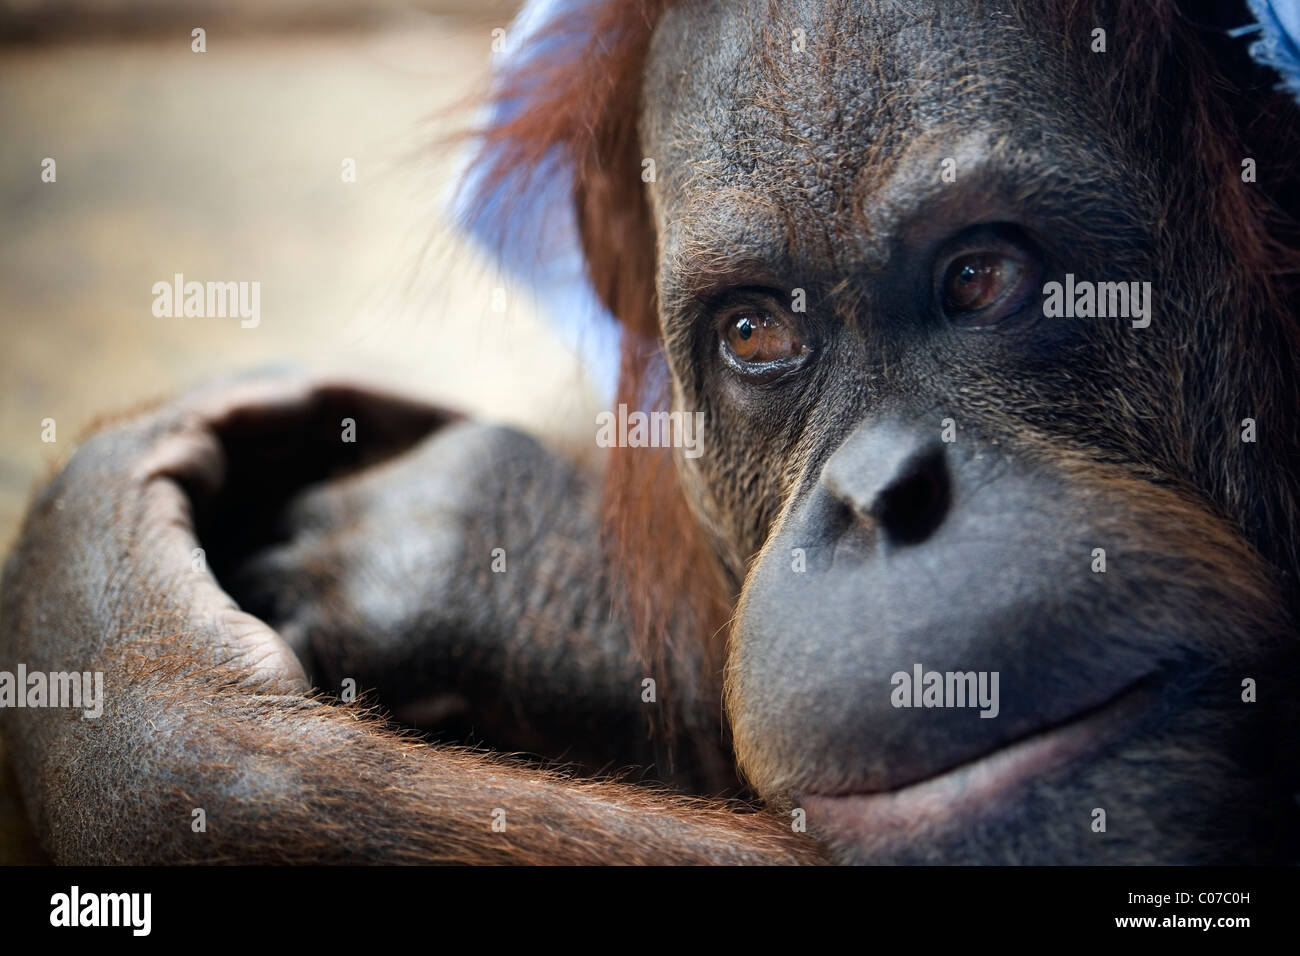 Young orangutan - Stock Image